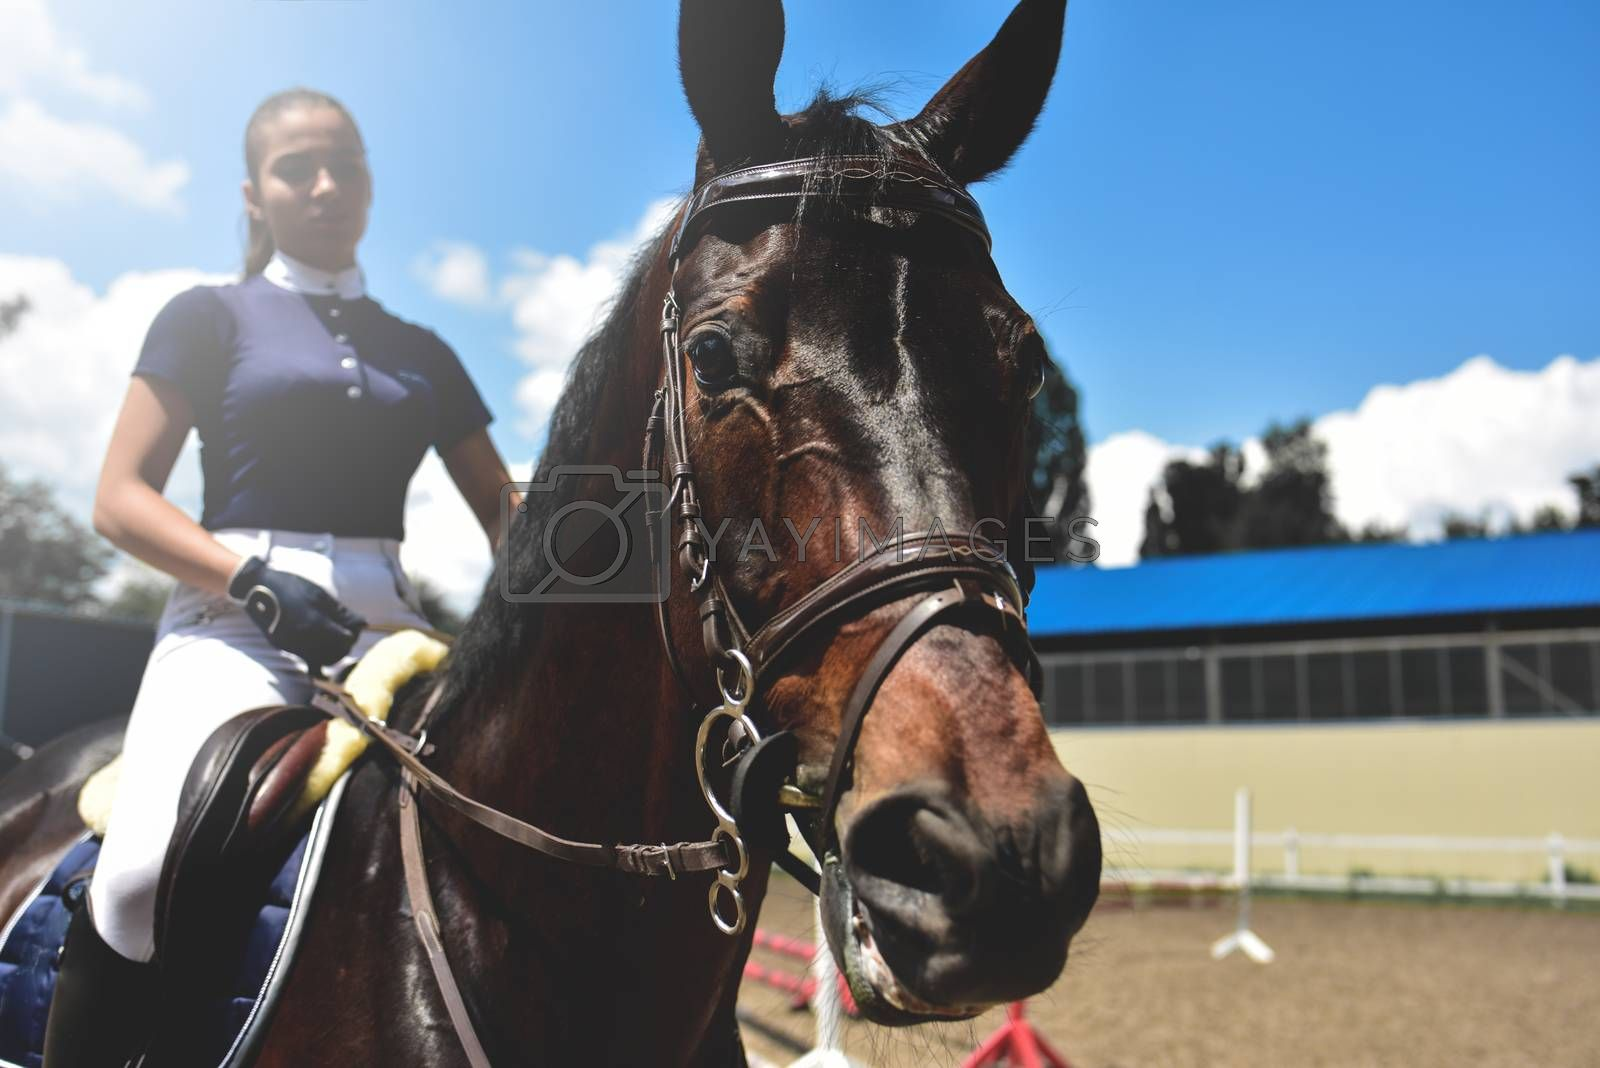 young girl jockey trains horse to horse racing at summer. equestrian